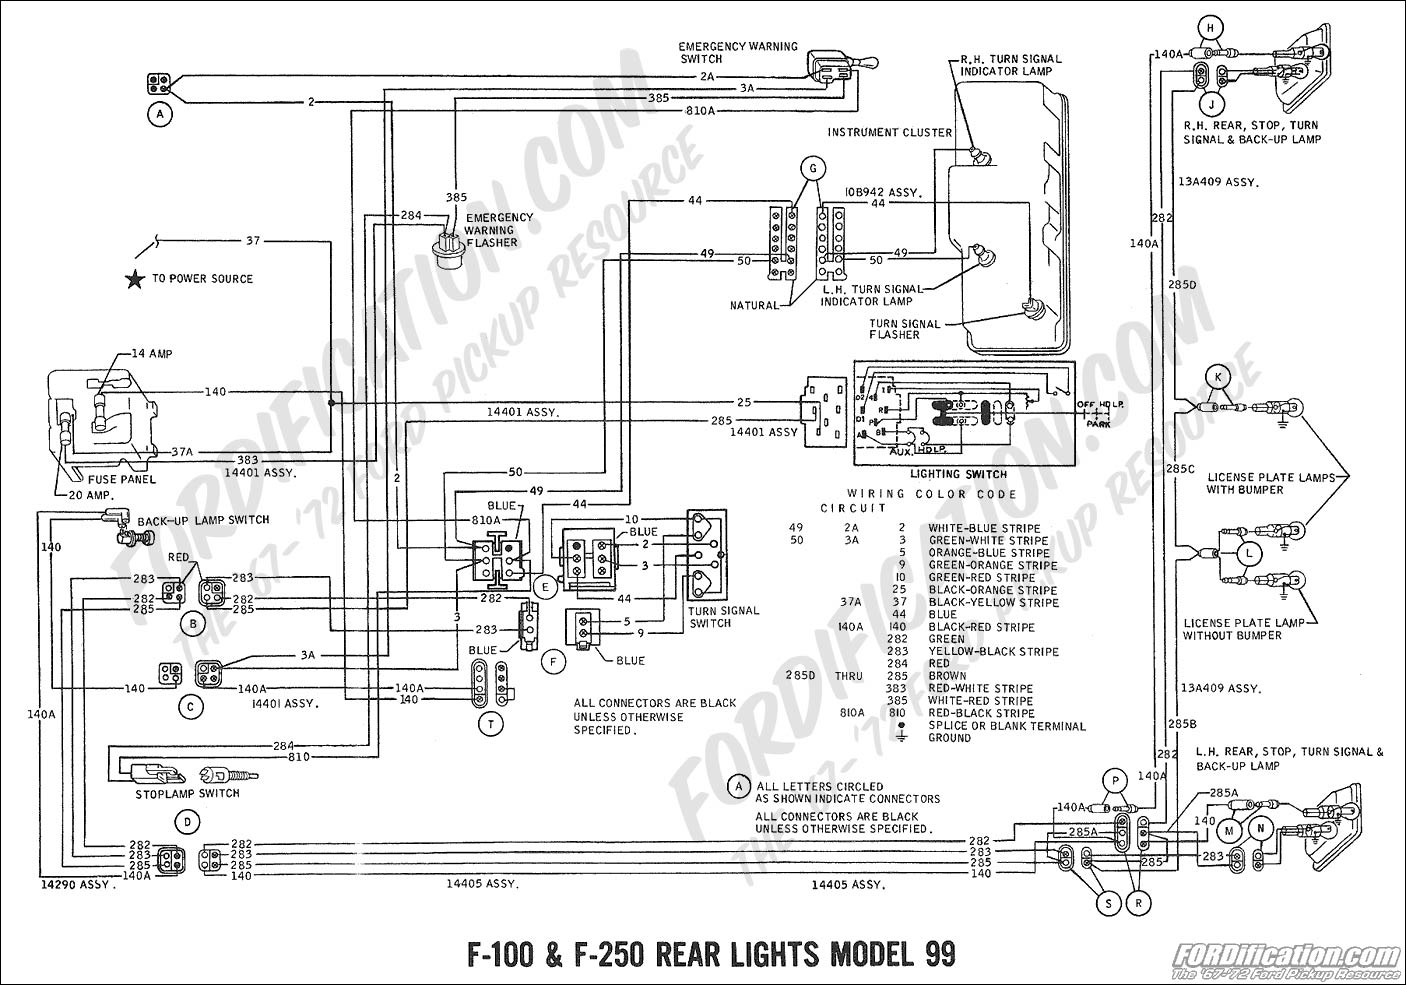 Cadillac 1964 Windows Wiring Diagram together with 2004 Silverado Fuel Leak T13772 also Nissan Undercarriage Diagram besides 6me78 Gmc Sierra 3500 Hd Slt Diesel Dually 4x4 together with 2004 F150 Fuse Box Layout. on engine diagram pictures with labels ford truck